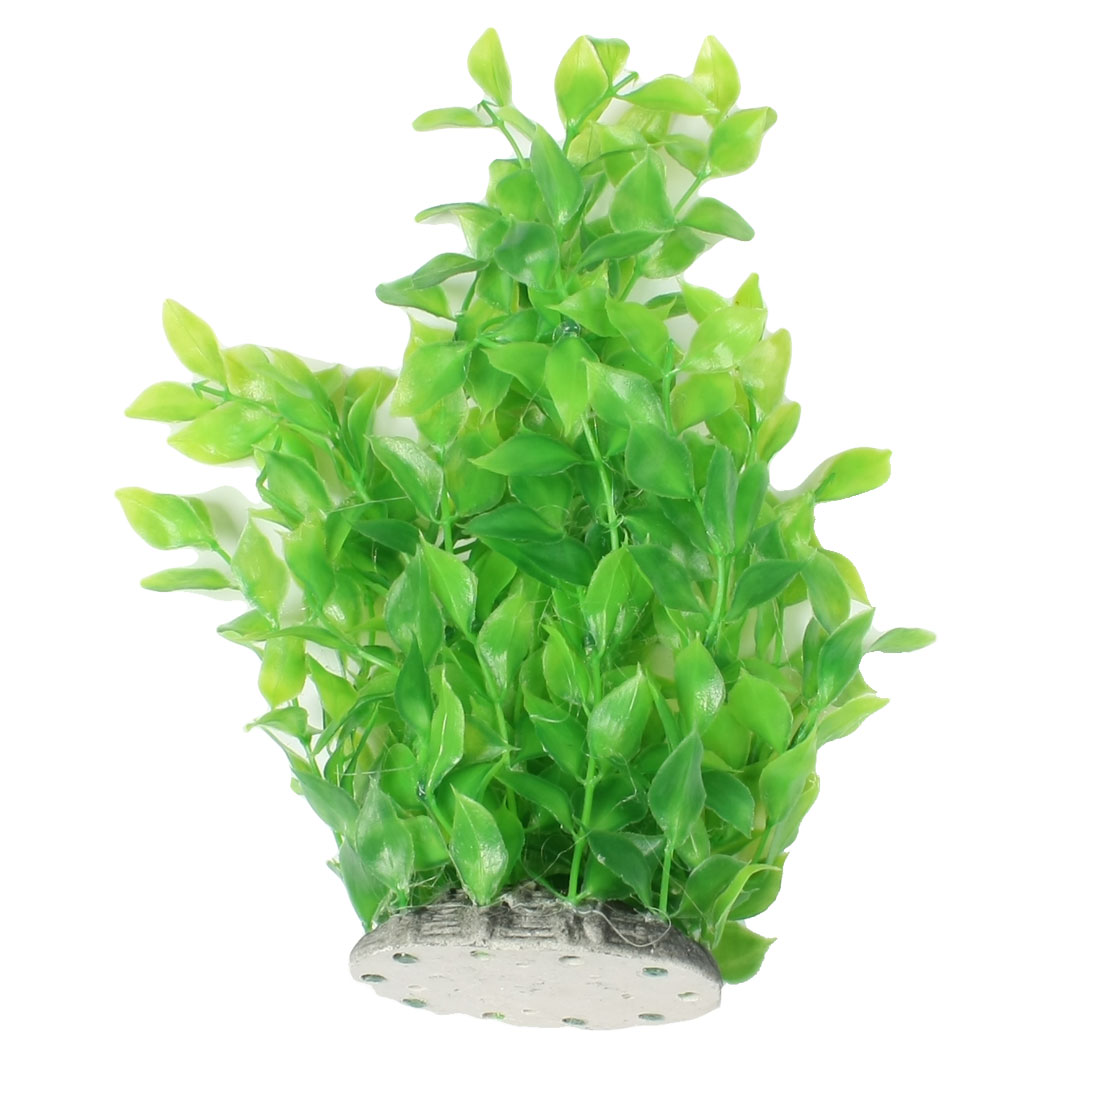 "9.6"" Height Green Plastic Leaf Fish Aquarium Ornament Plant"